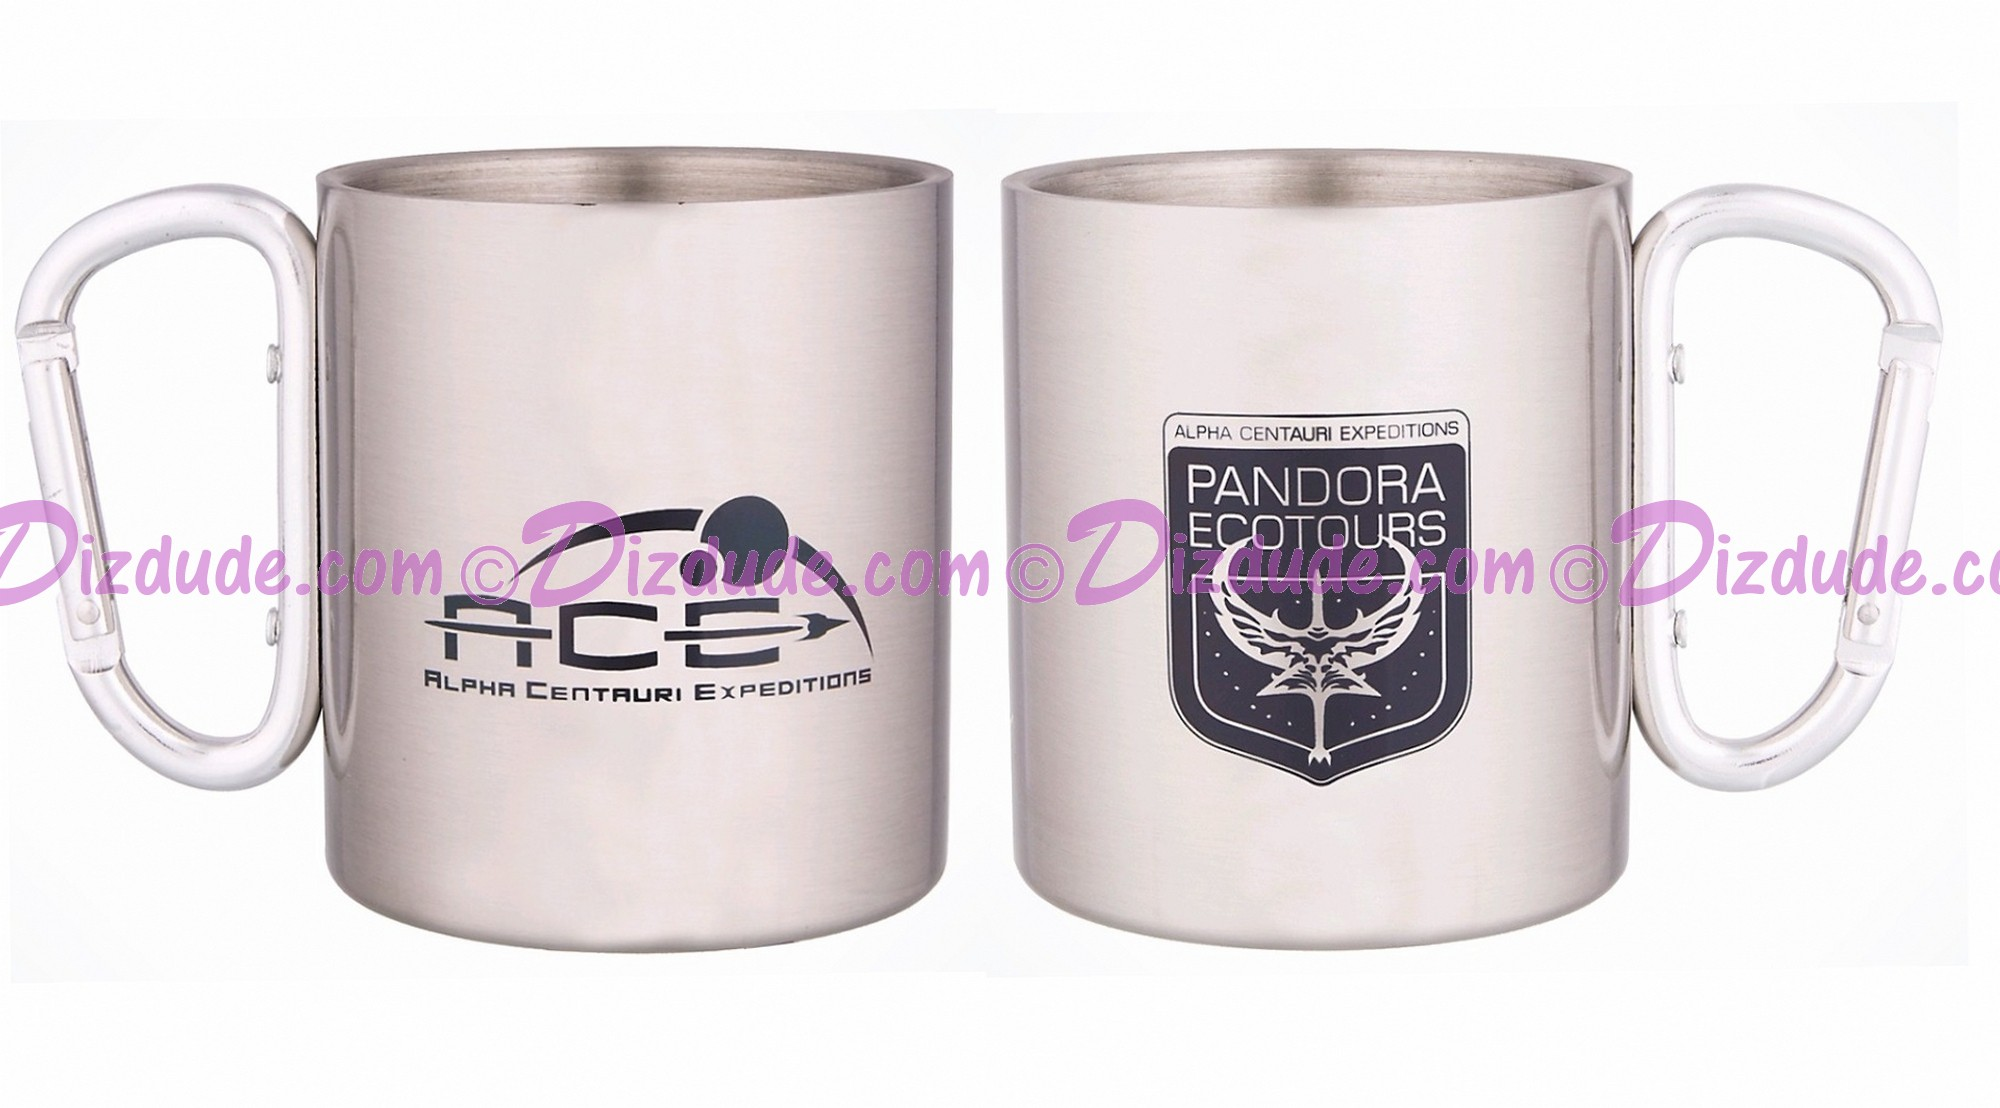 Avatar Alpha Centauri Expeditions (A.C.E.) Pandora Ecotours Stainless Steel Mug - Disney Pandora – The World of Avatar © Dizdude.com